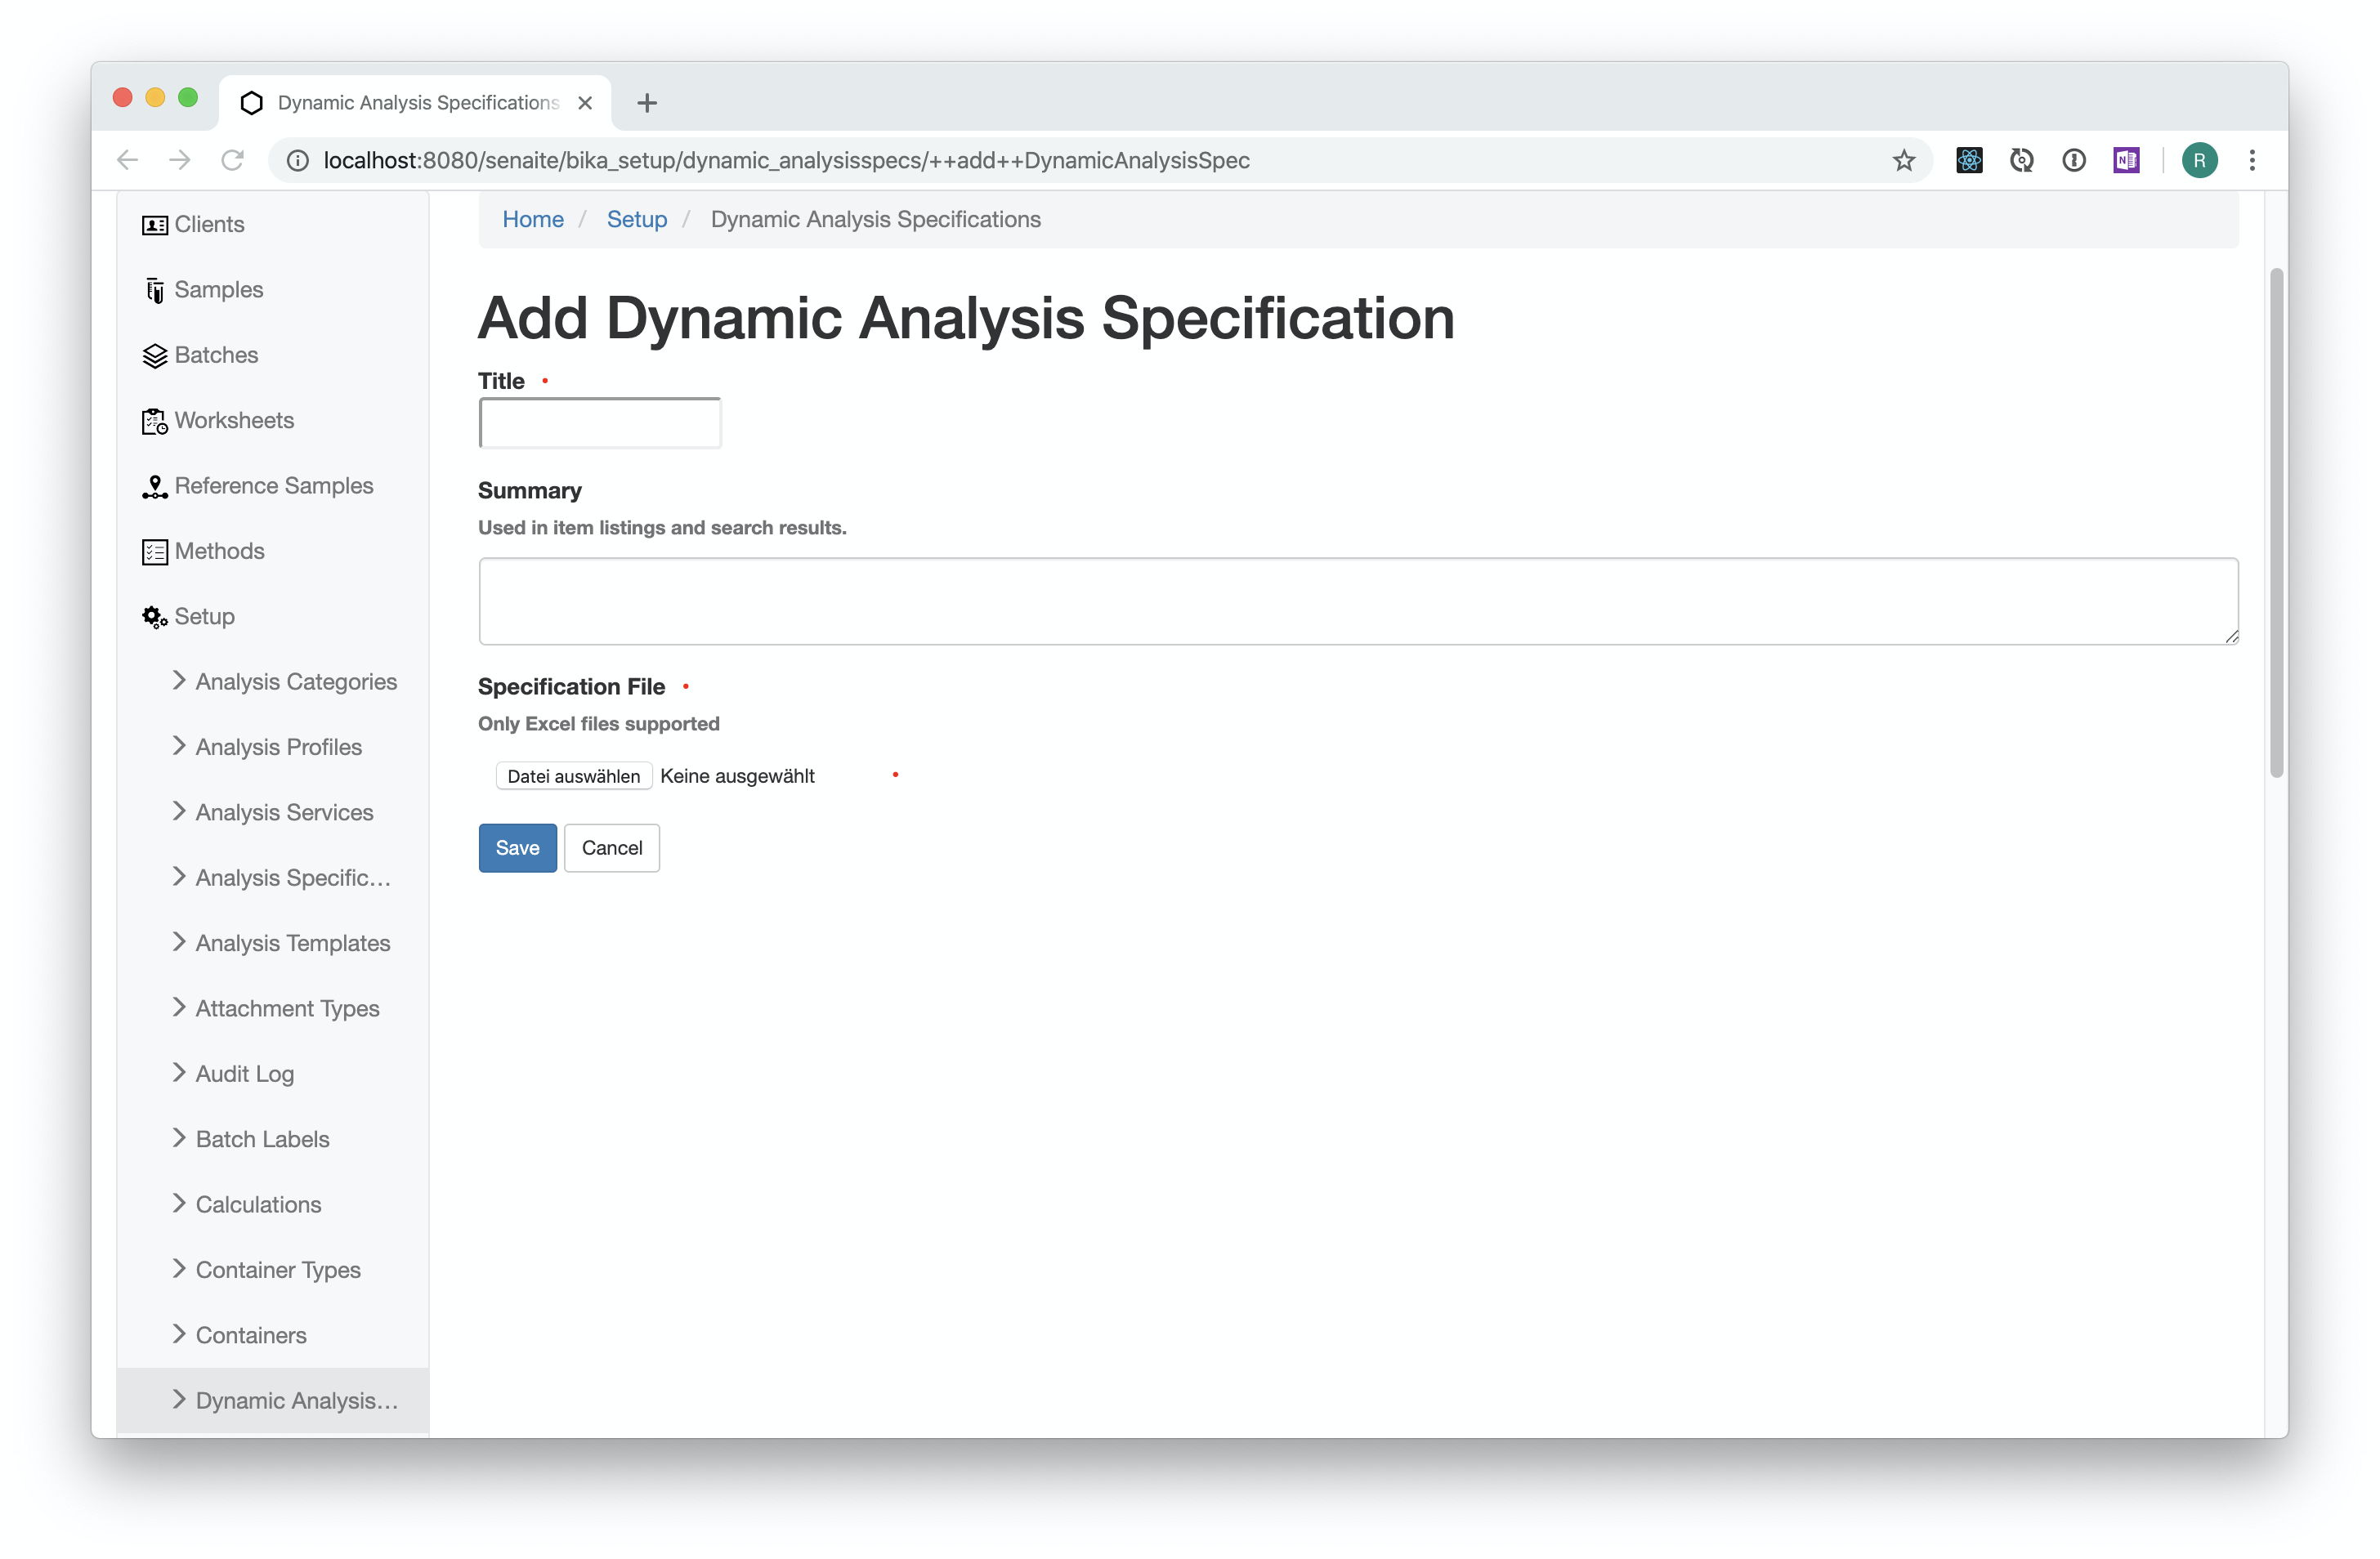 Add Dynamic Analysis Specification